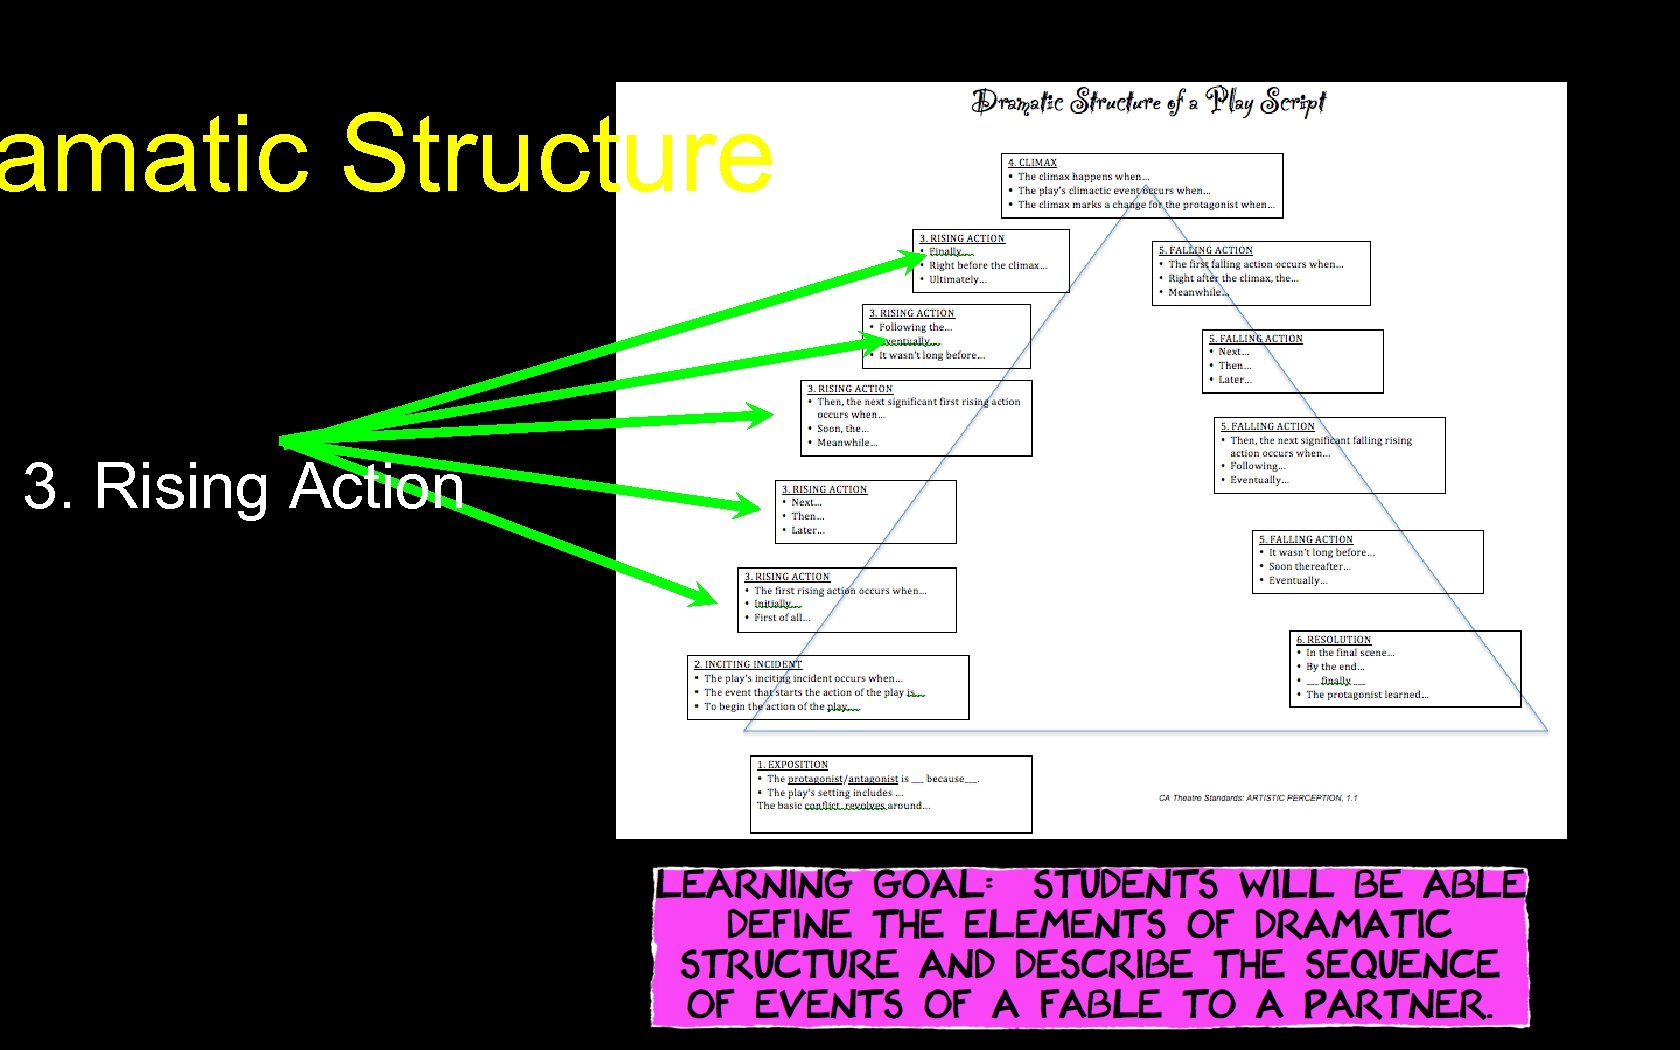 amatic Structure 3. Rising Action